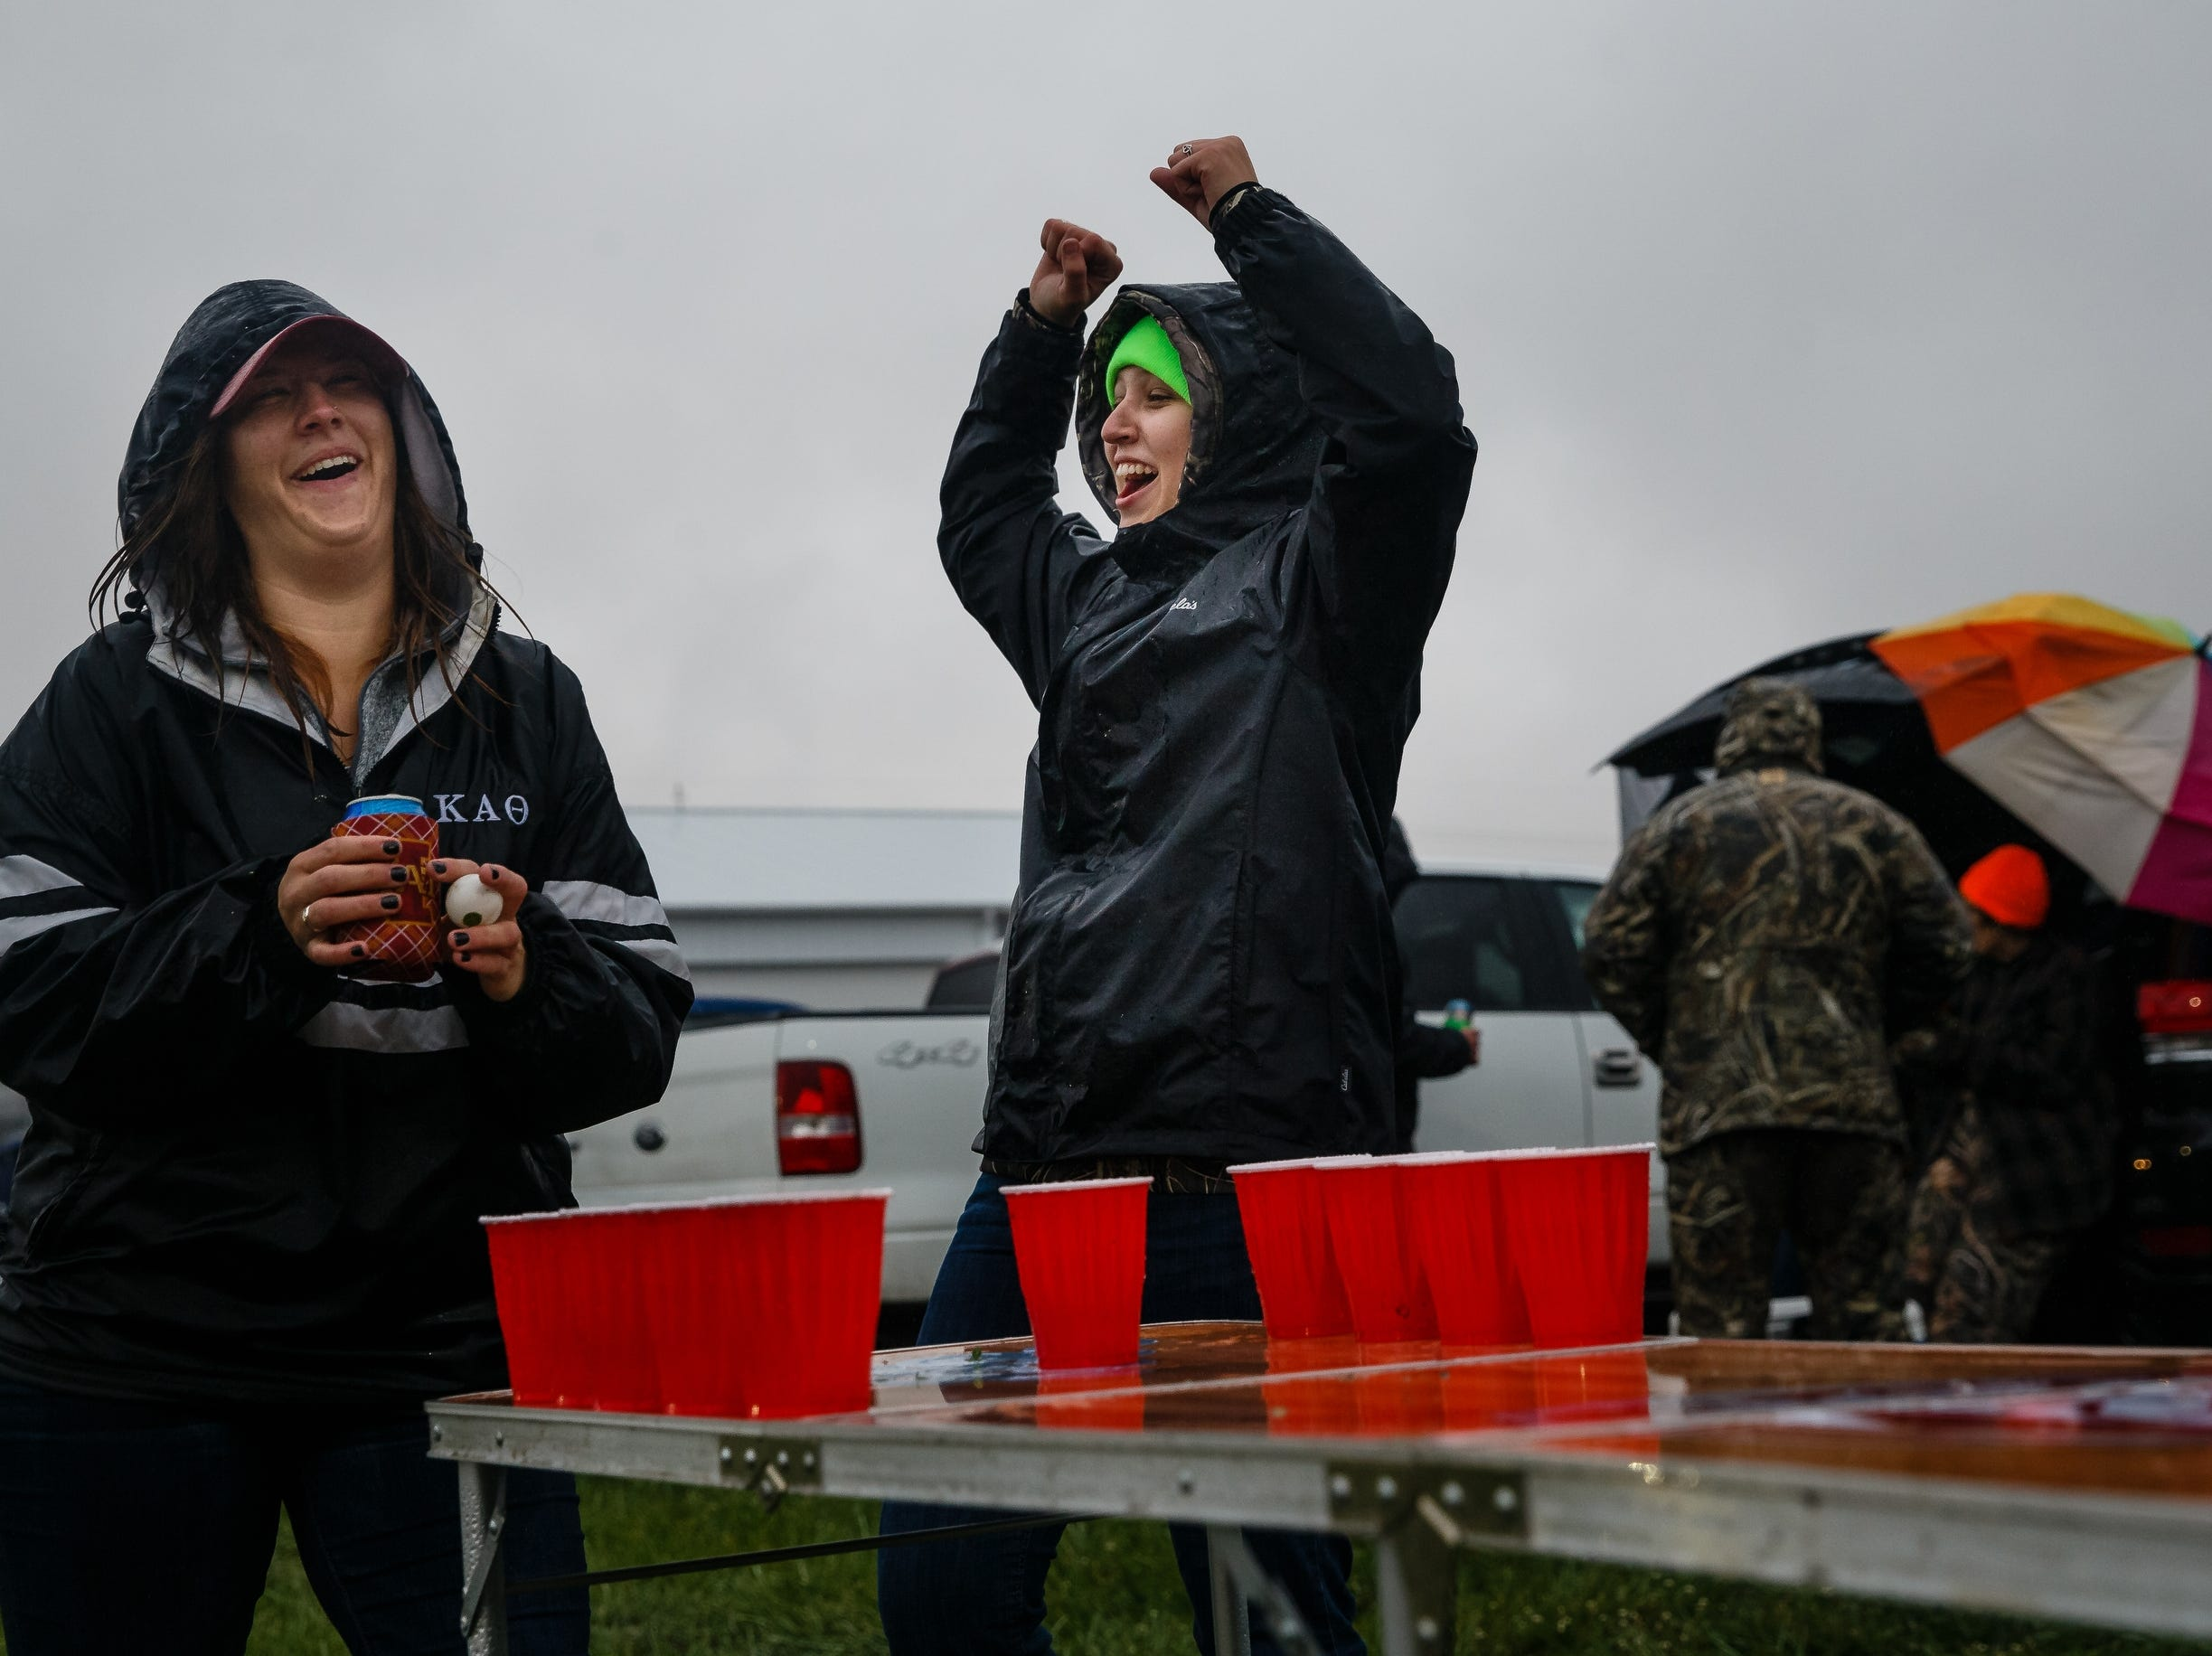 Allison Lane, 19 of Des Moines, celebrates a winning throw as she and her sister Megan Lane, 28 of Des Moines, left, try to stay dry and have fun before the start of Luke Bryan's Farm Tour on Saturday, Sept. 29, 2018 in Boone.